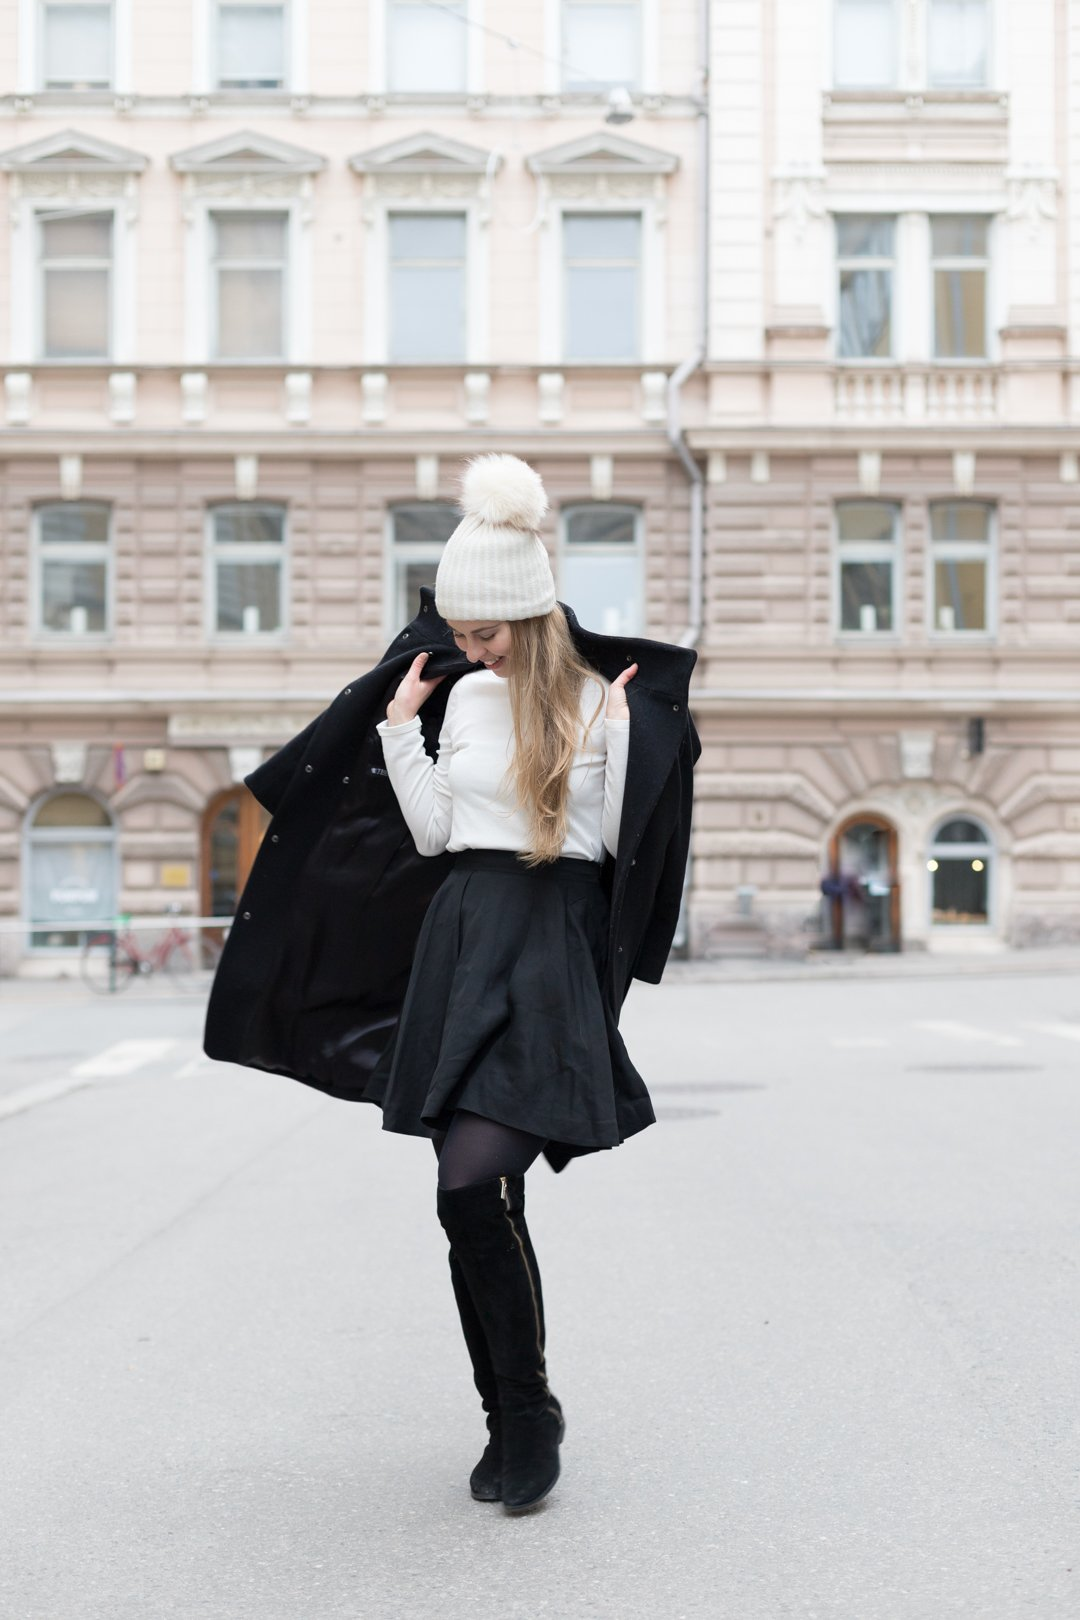 Winter outfit in Finland